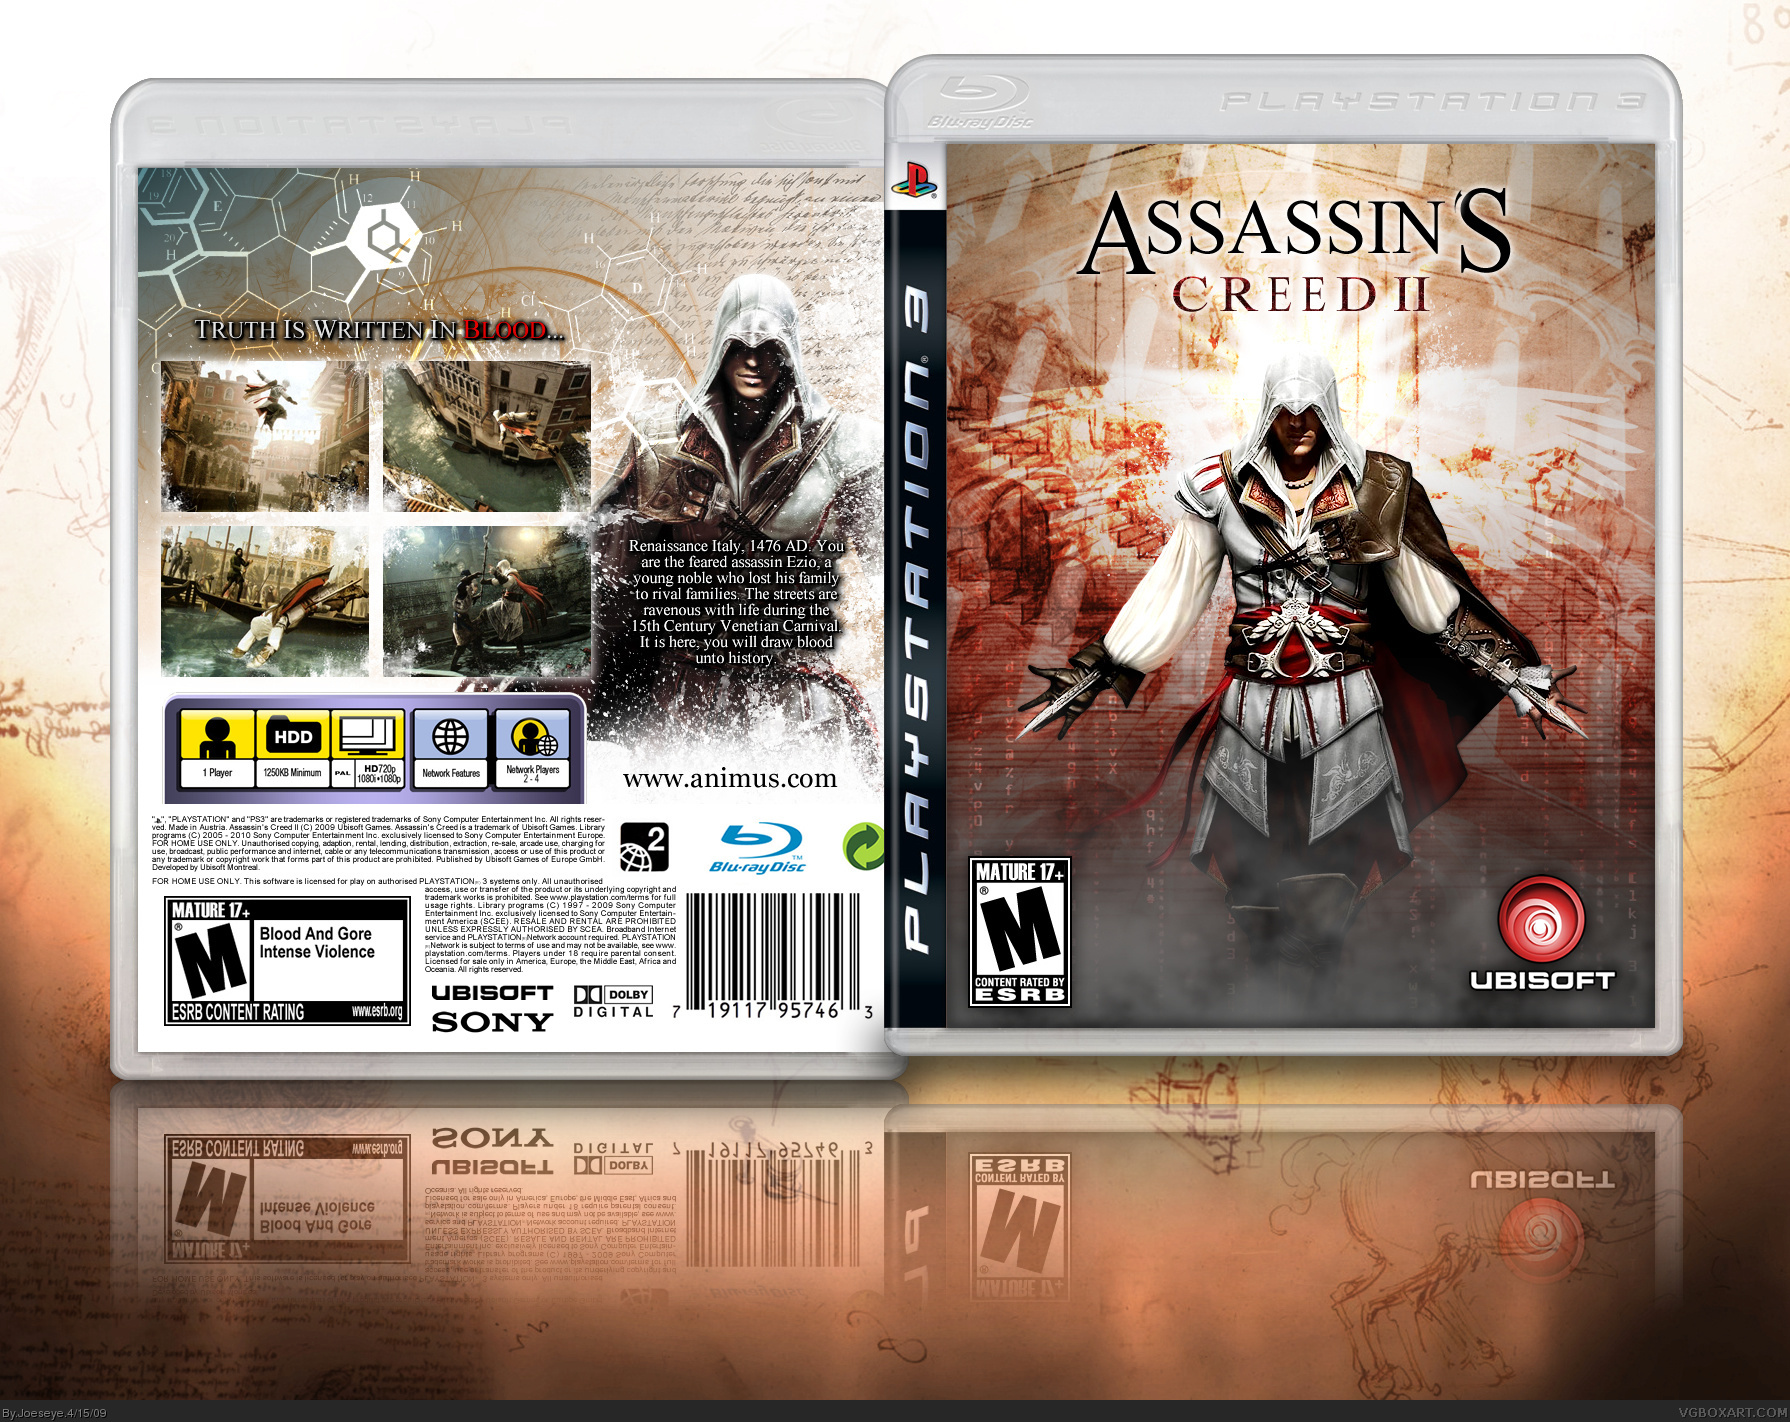 Assassin's Creed II PlayStation 3 Box Art Cover by Joeseye